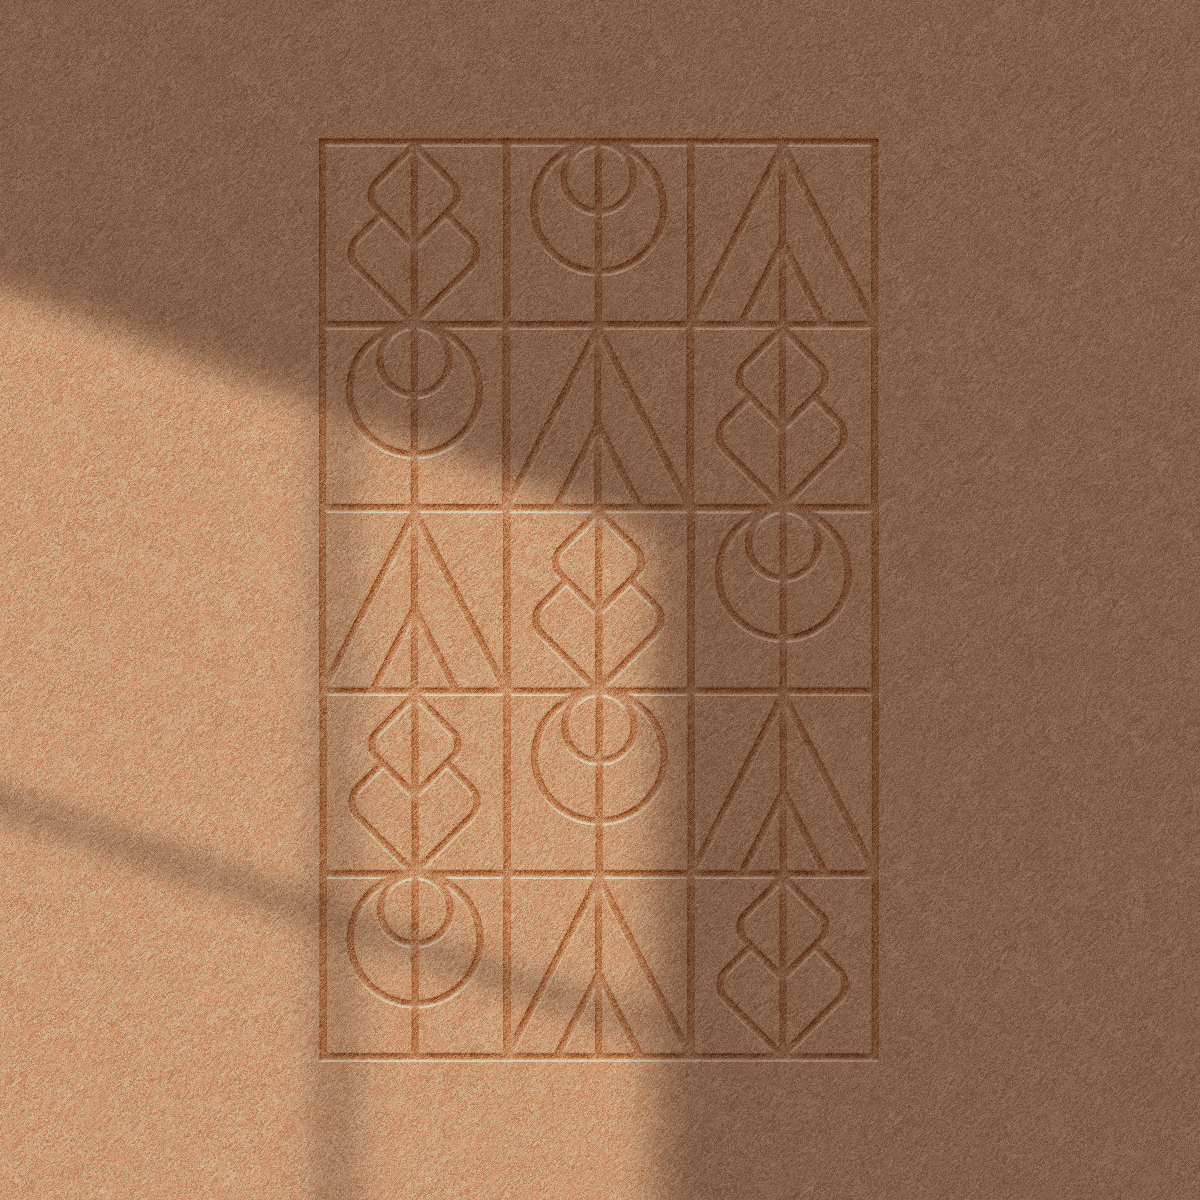 Branding and Visual Identity for Bia Barros Architect in Brazil